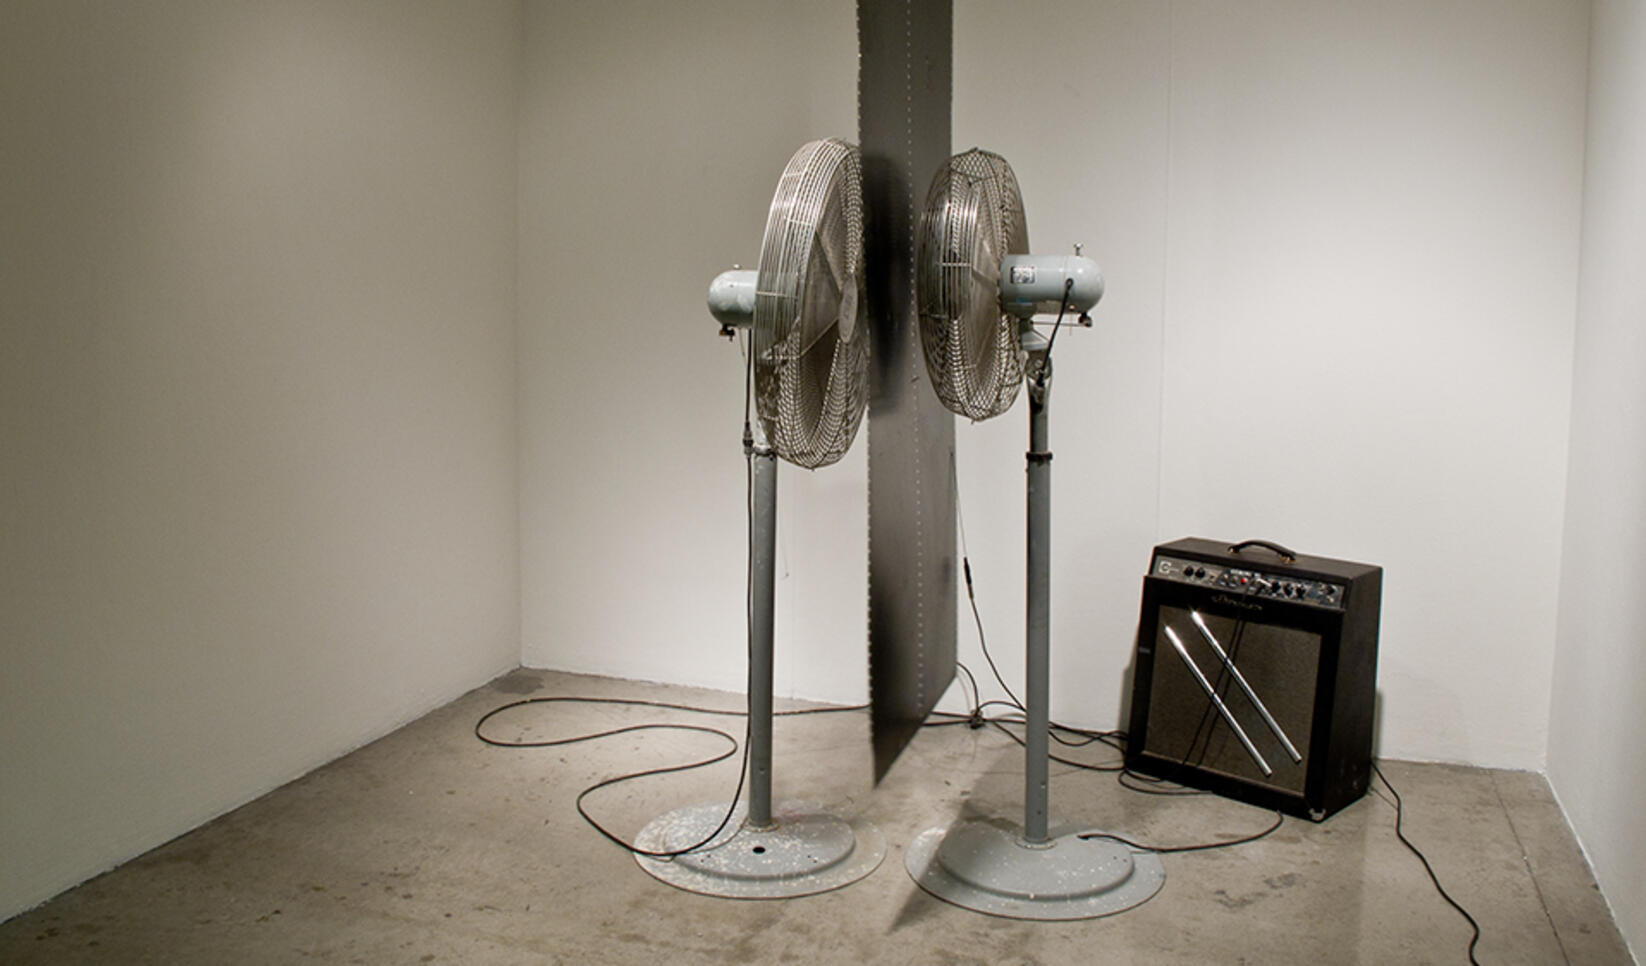 Two fans standing next to each other like a reflection ; Derek Ernster